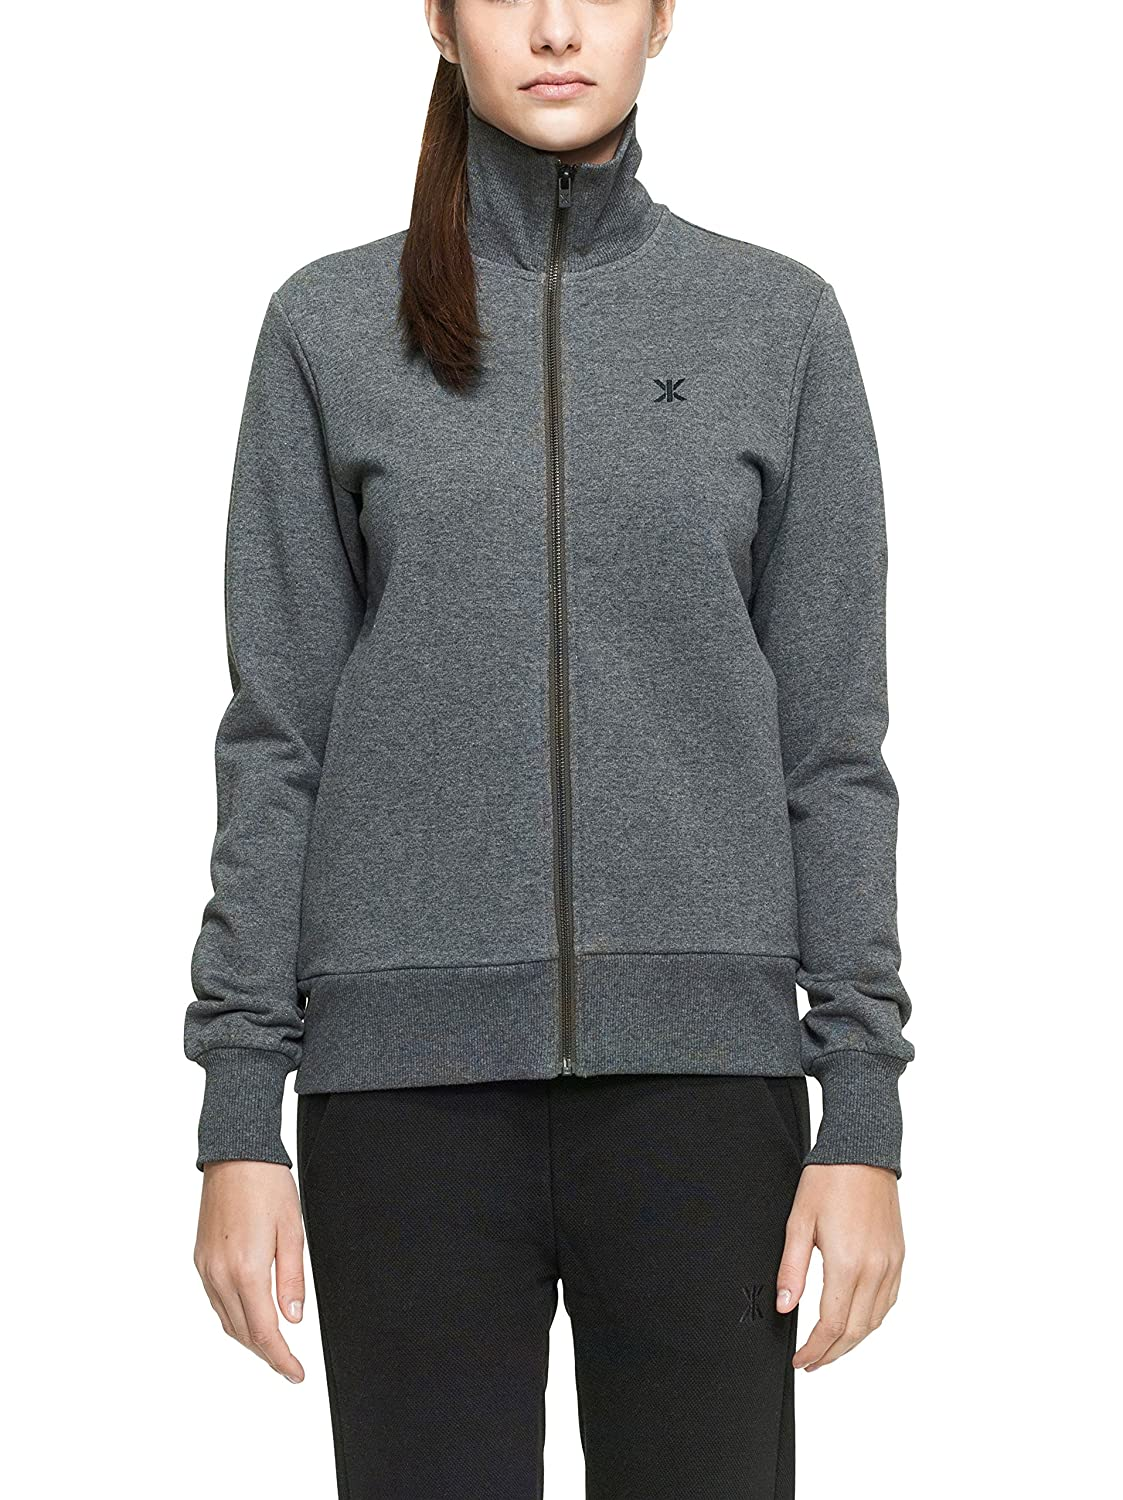 TALLA (talla de fabricante:X-Small). One Piece High Neck Zip out Sudadera Deportiva Unisex Adulto